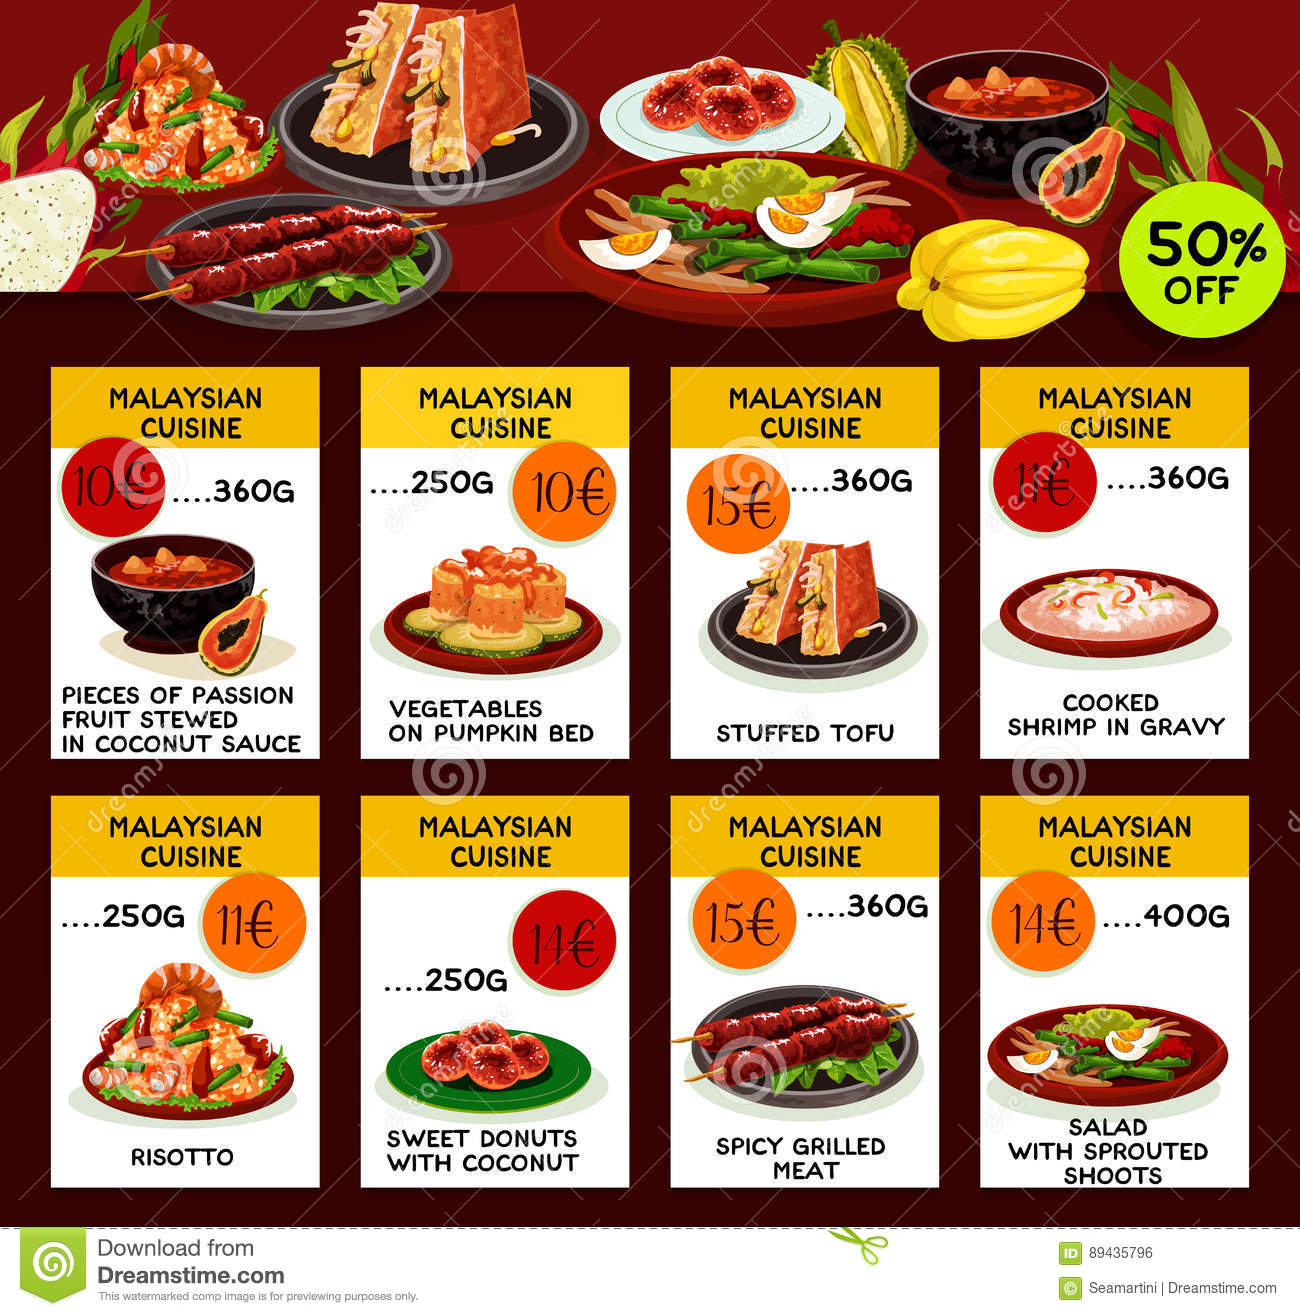 Malaysian cuisine restaurant menu template design stock for Akina japanese cuisine menu